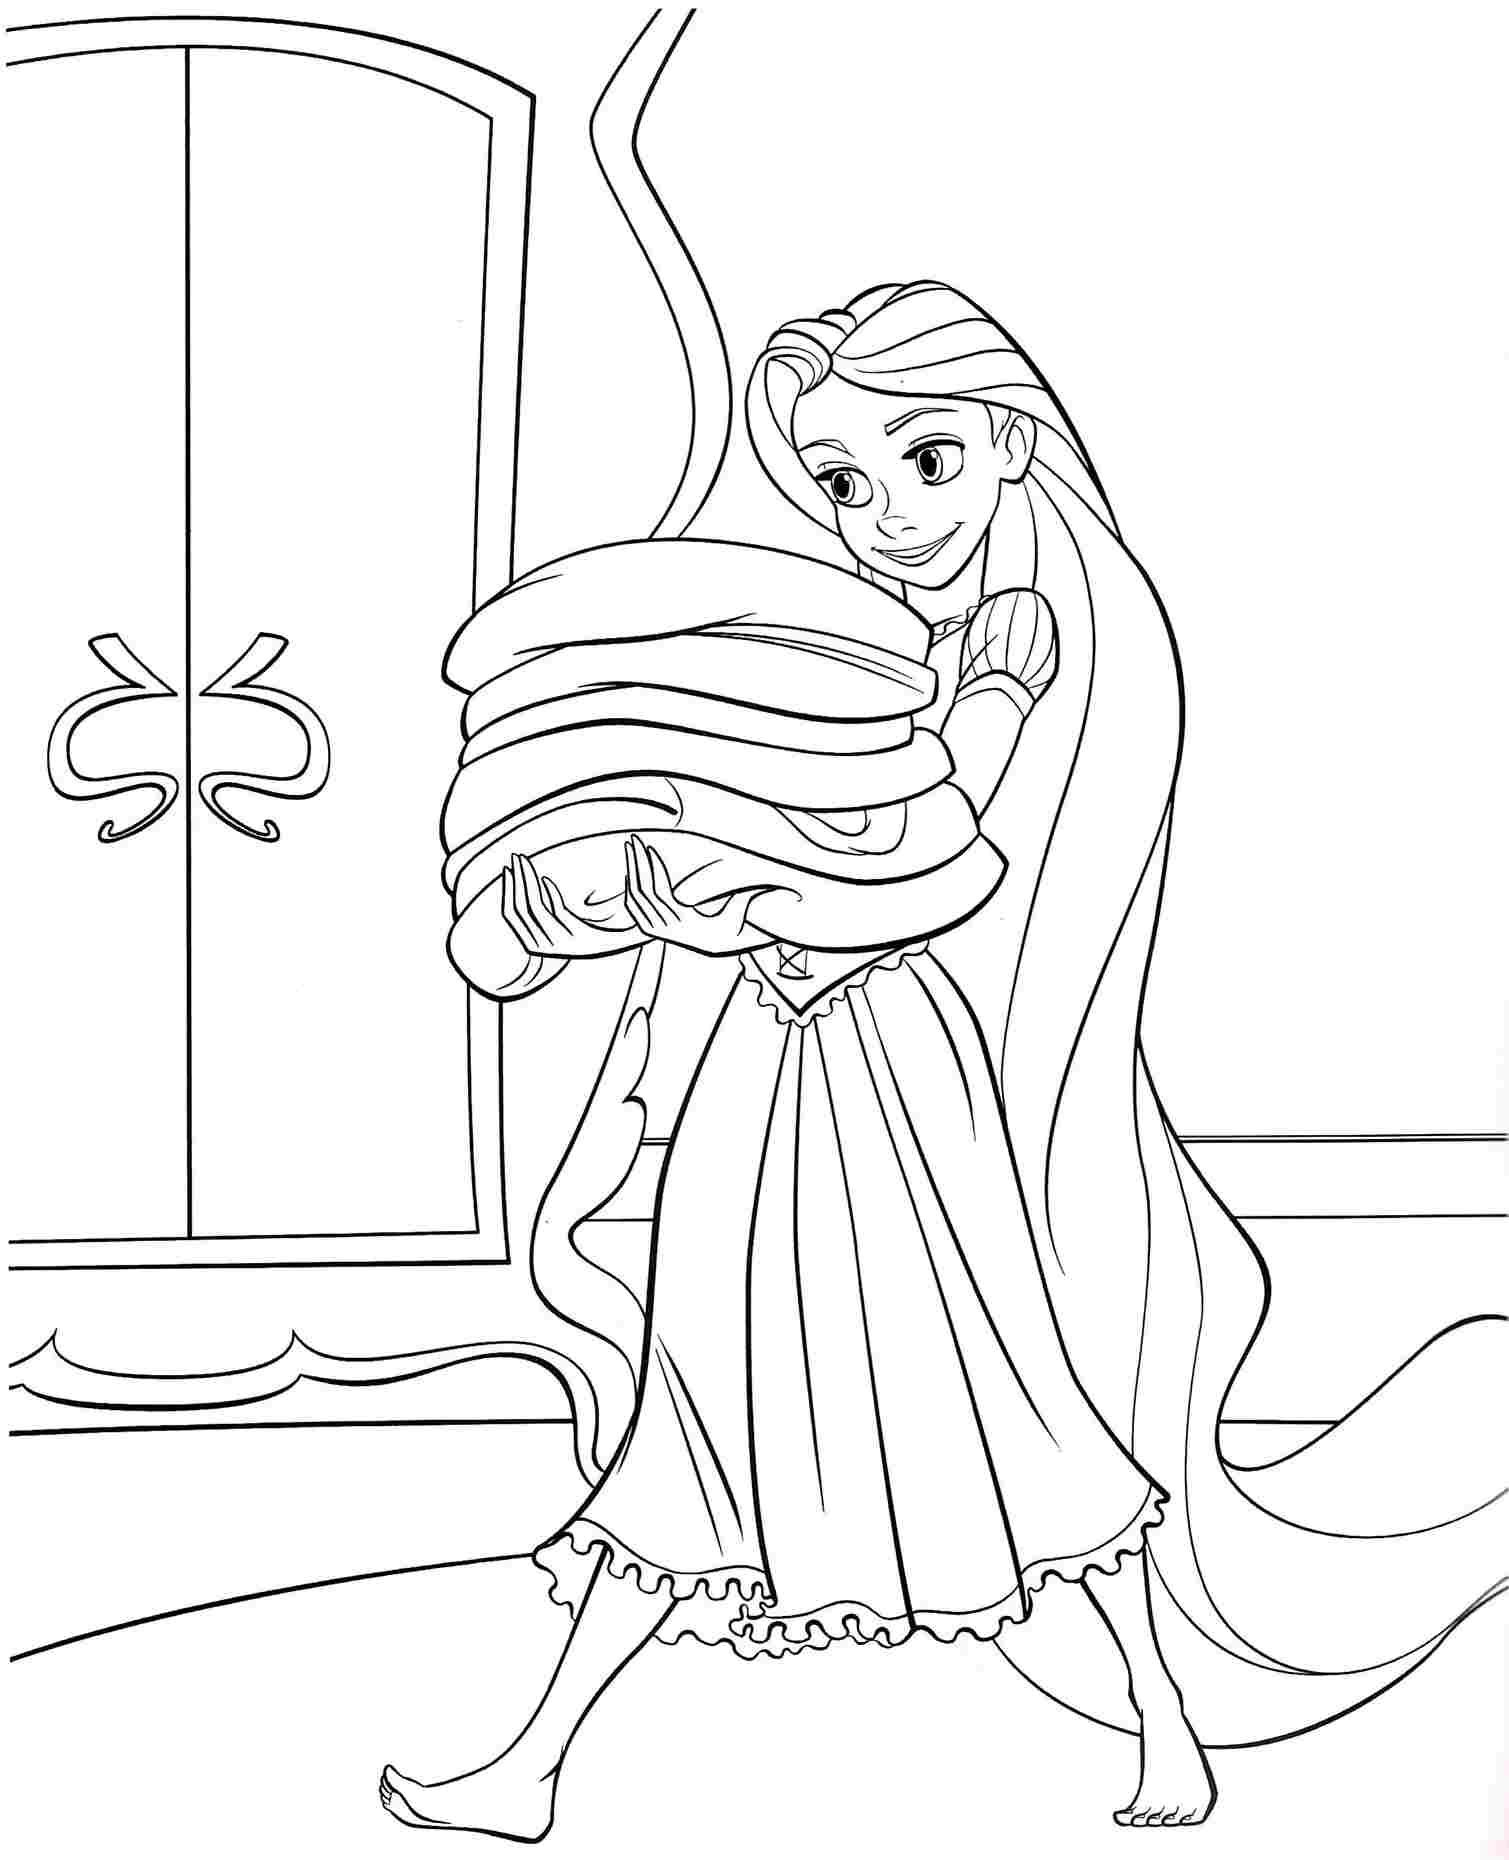 Coloring Pages Disney Princess Tangled Rapunzel Free For Kids Boys